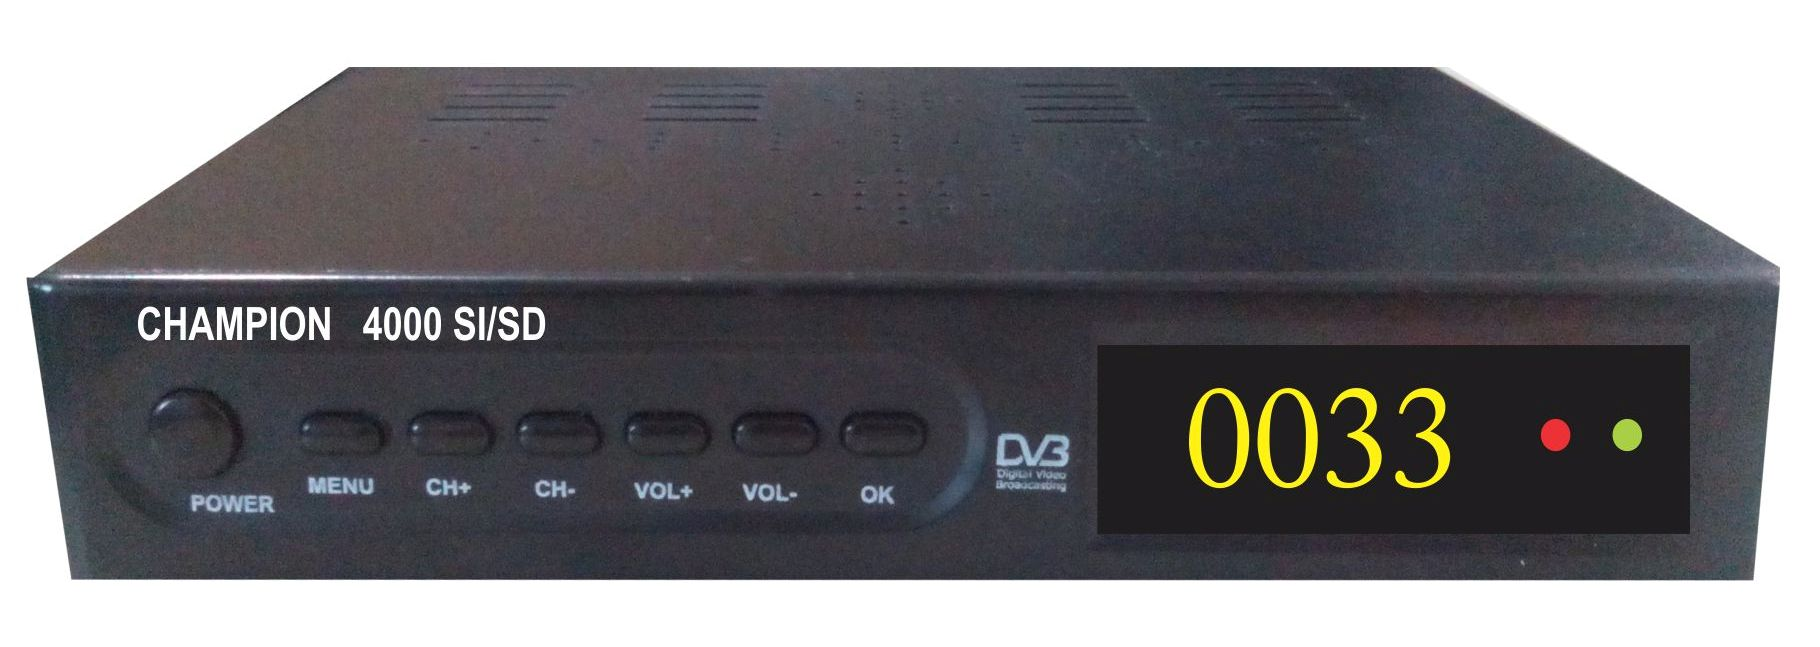 Champion 4000SI/SD-M DVB S/S2 MPEG-4